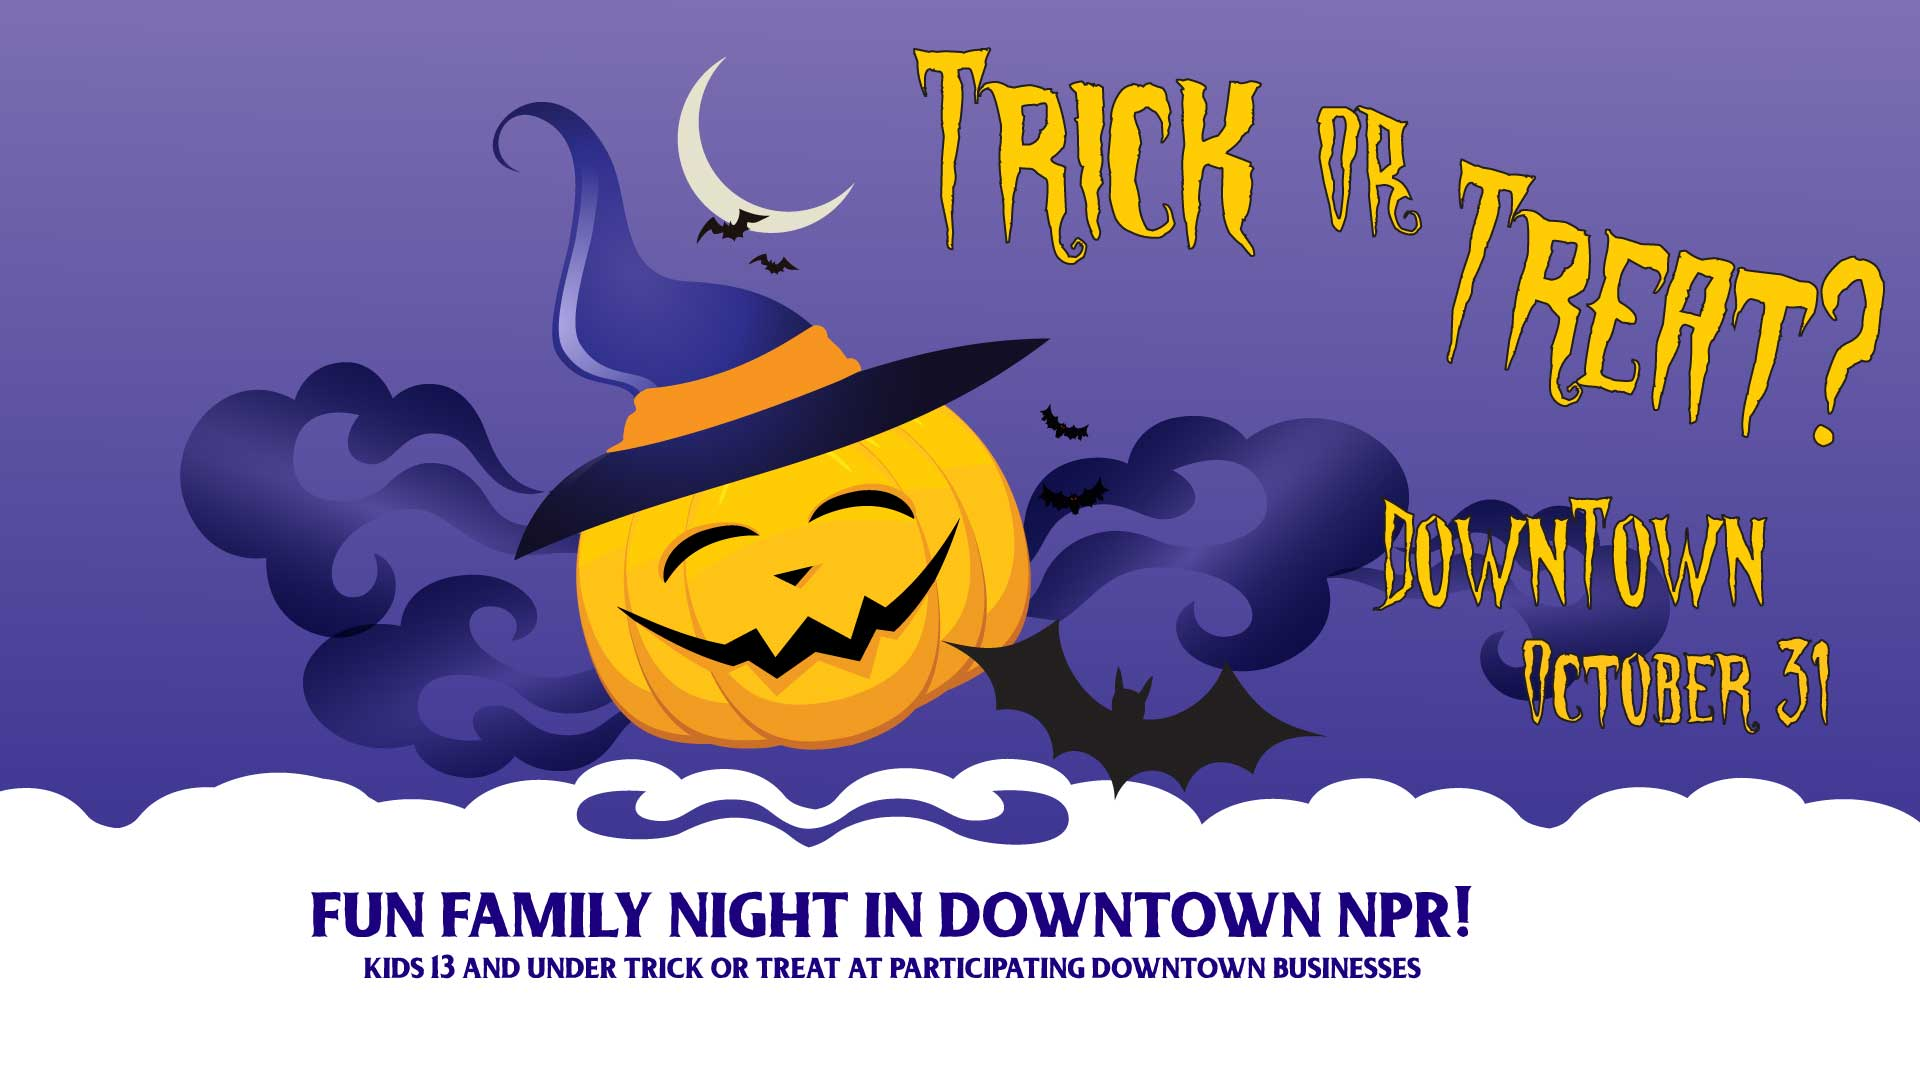 Free family trick or treat in downtown New Port Richey, FL